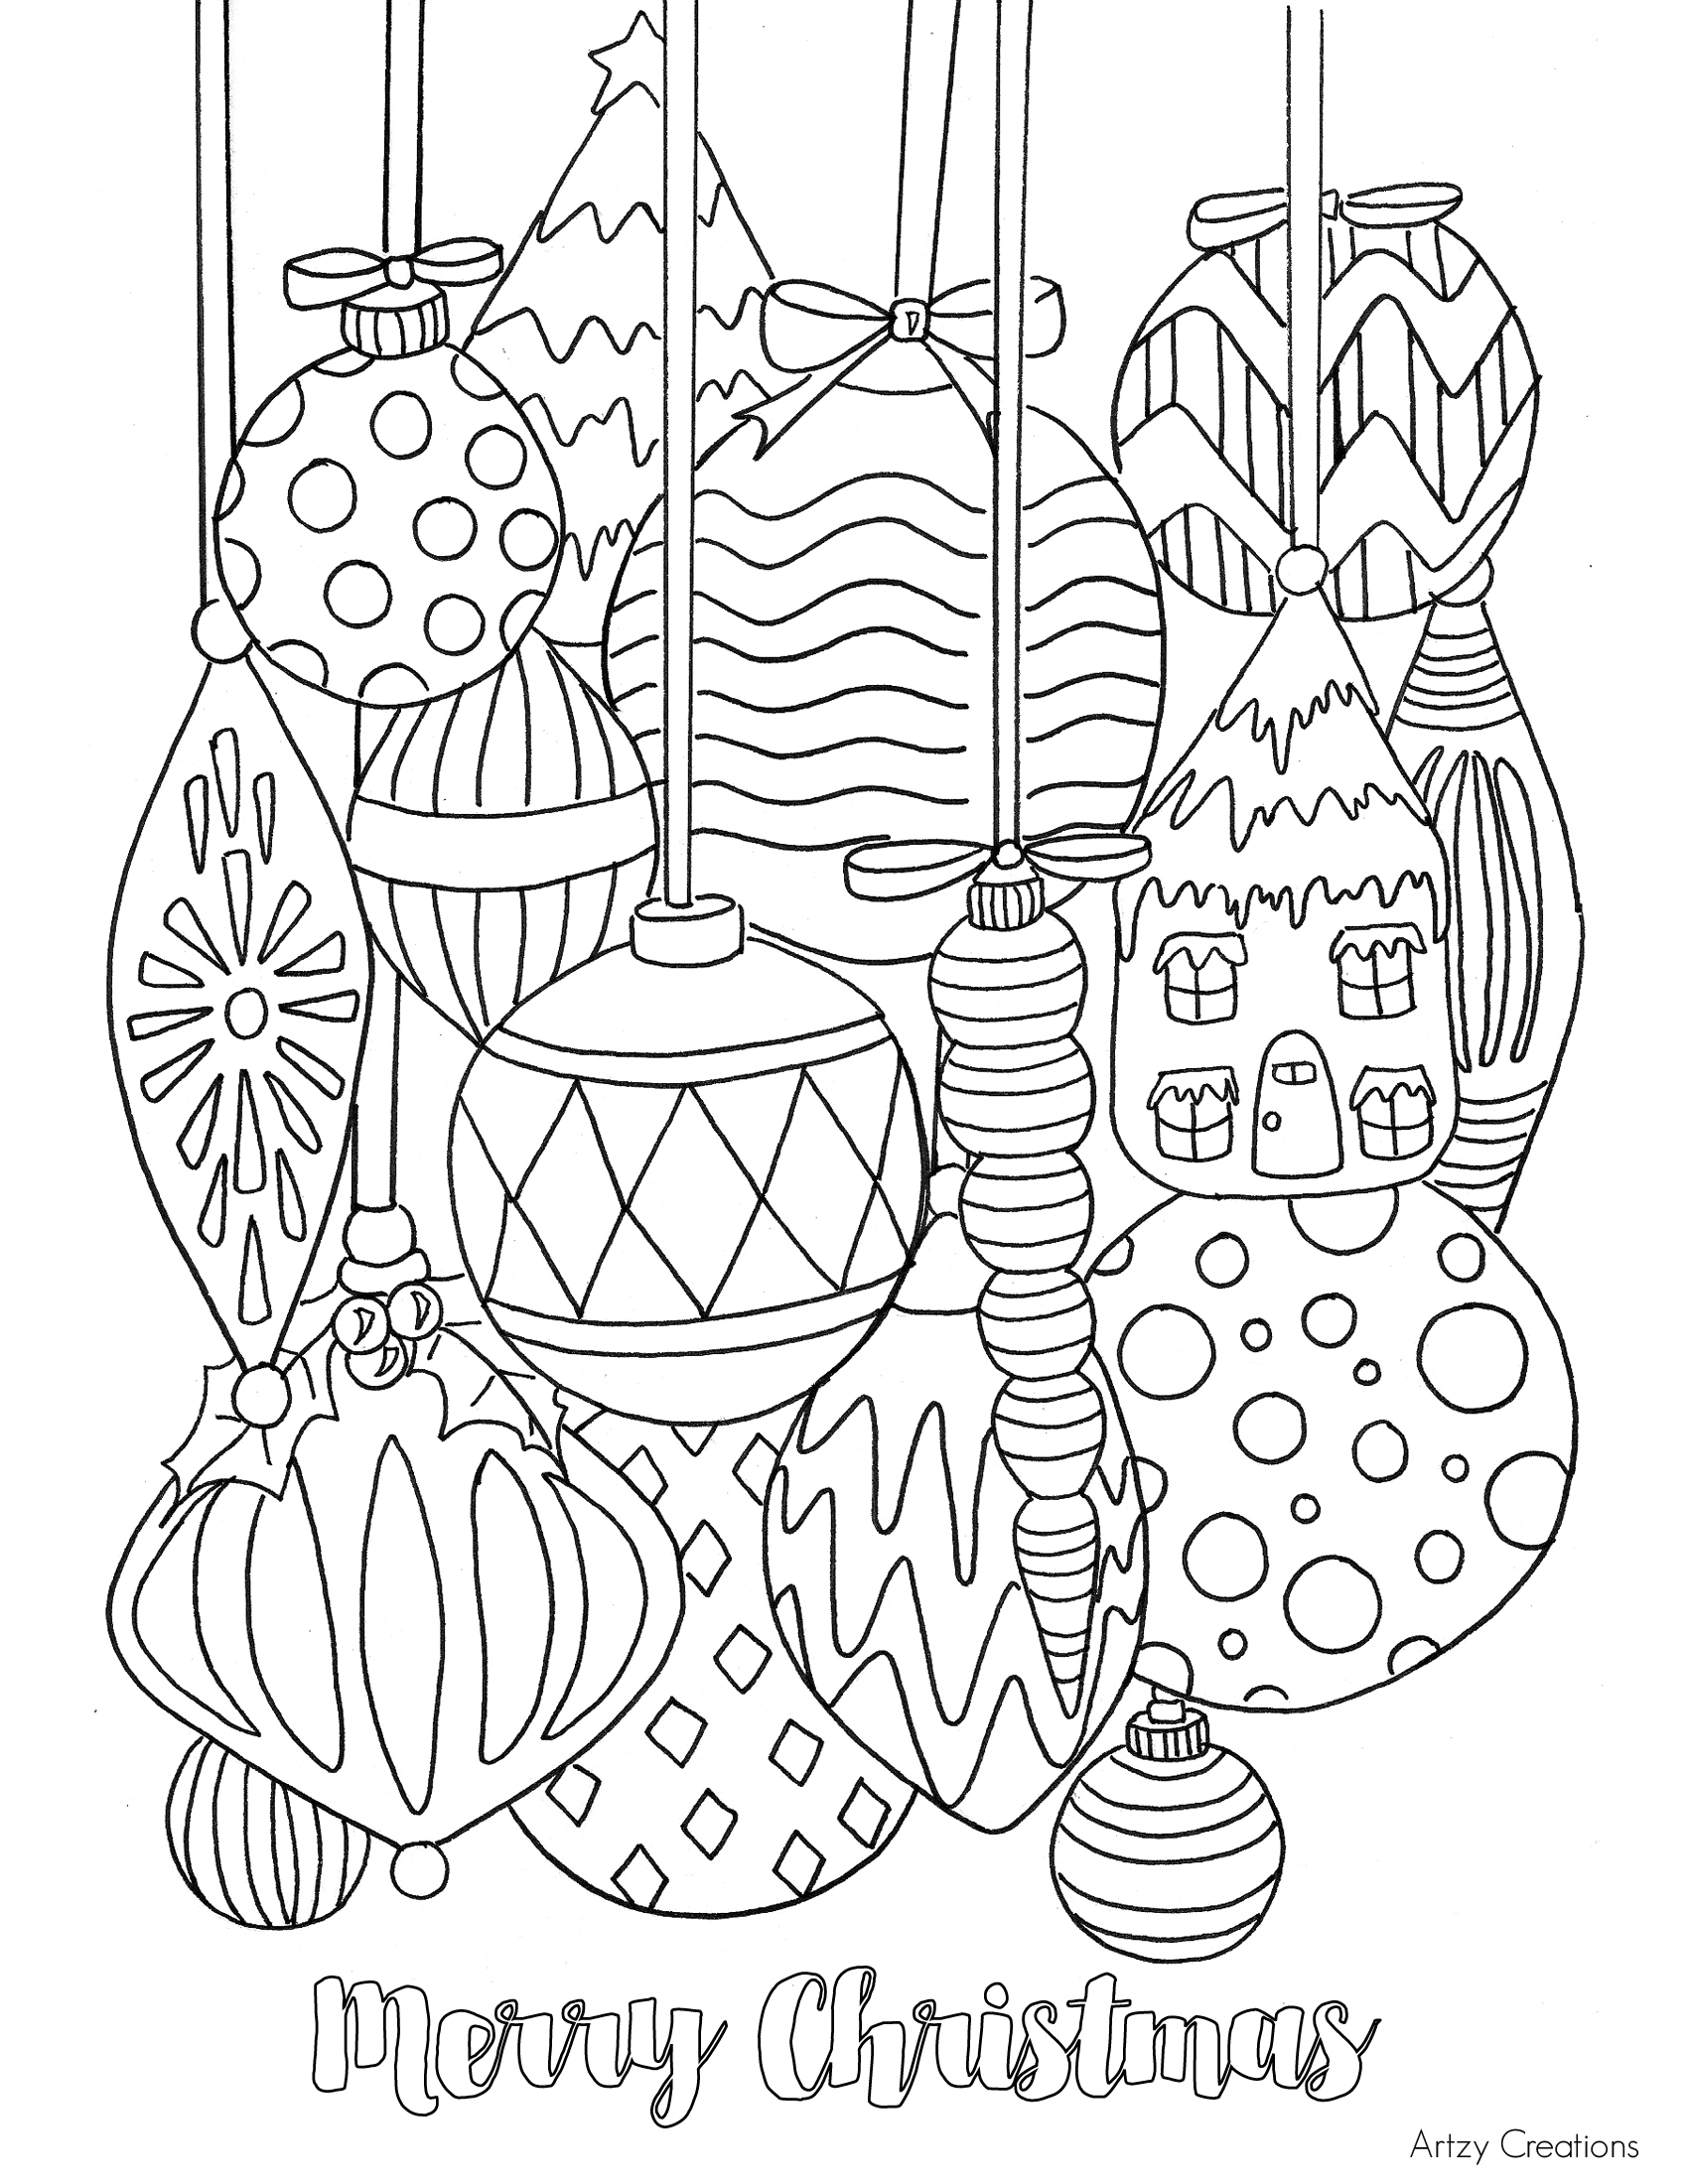 Christmas Coloring Pages That Are Printable With Free For Adults Download